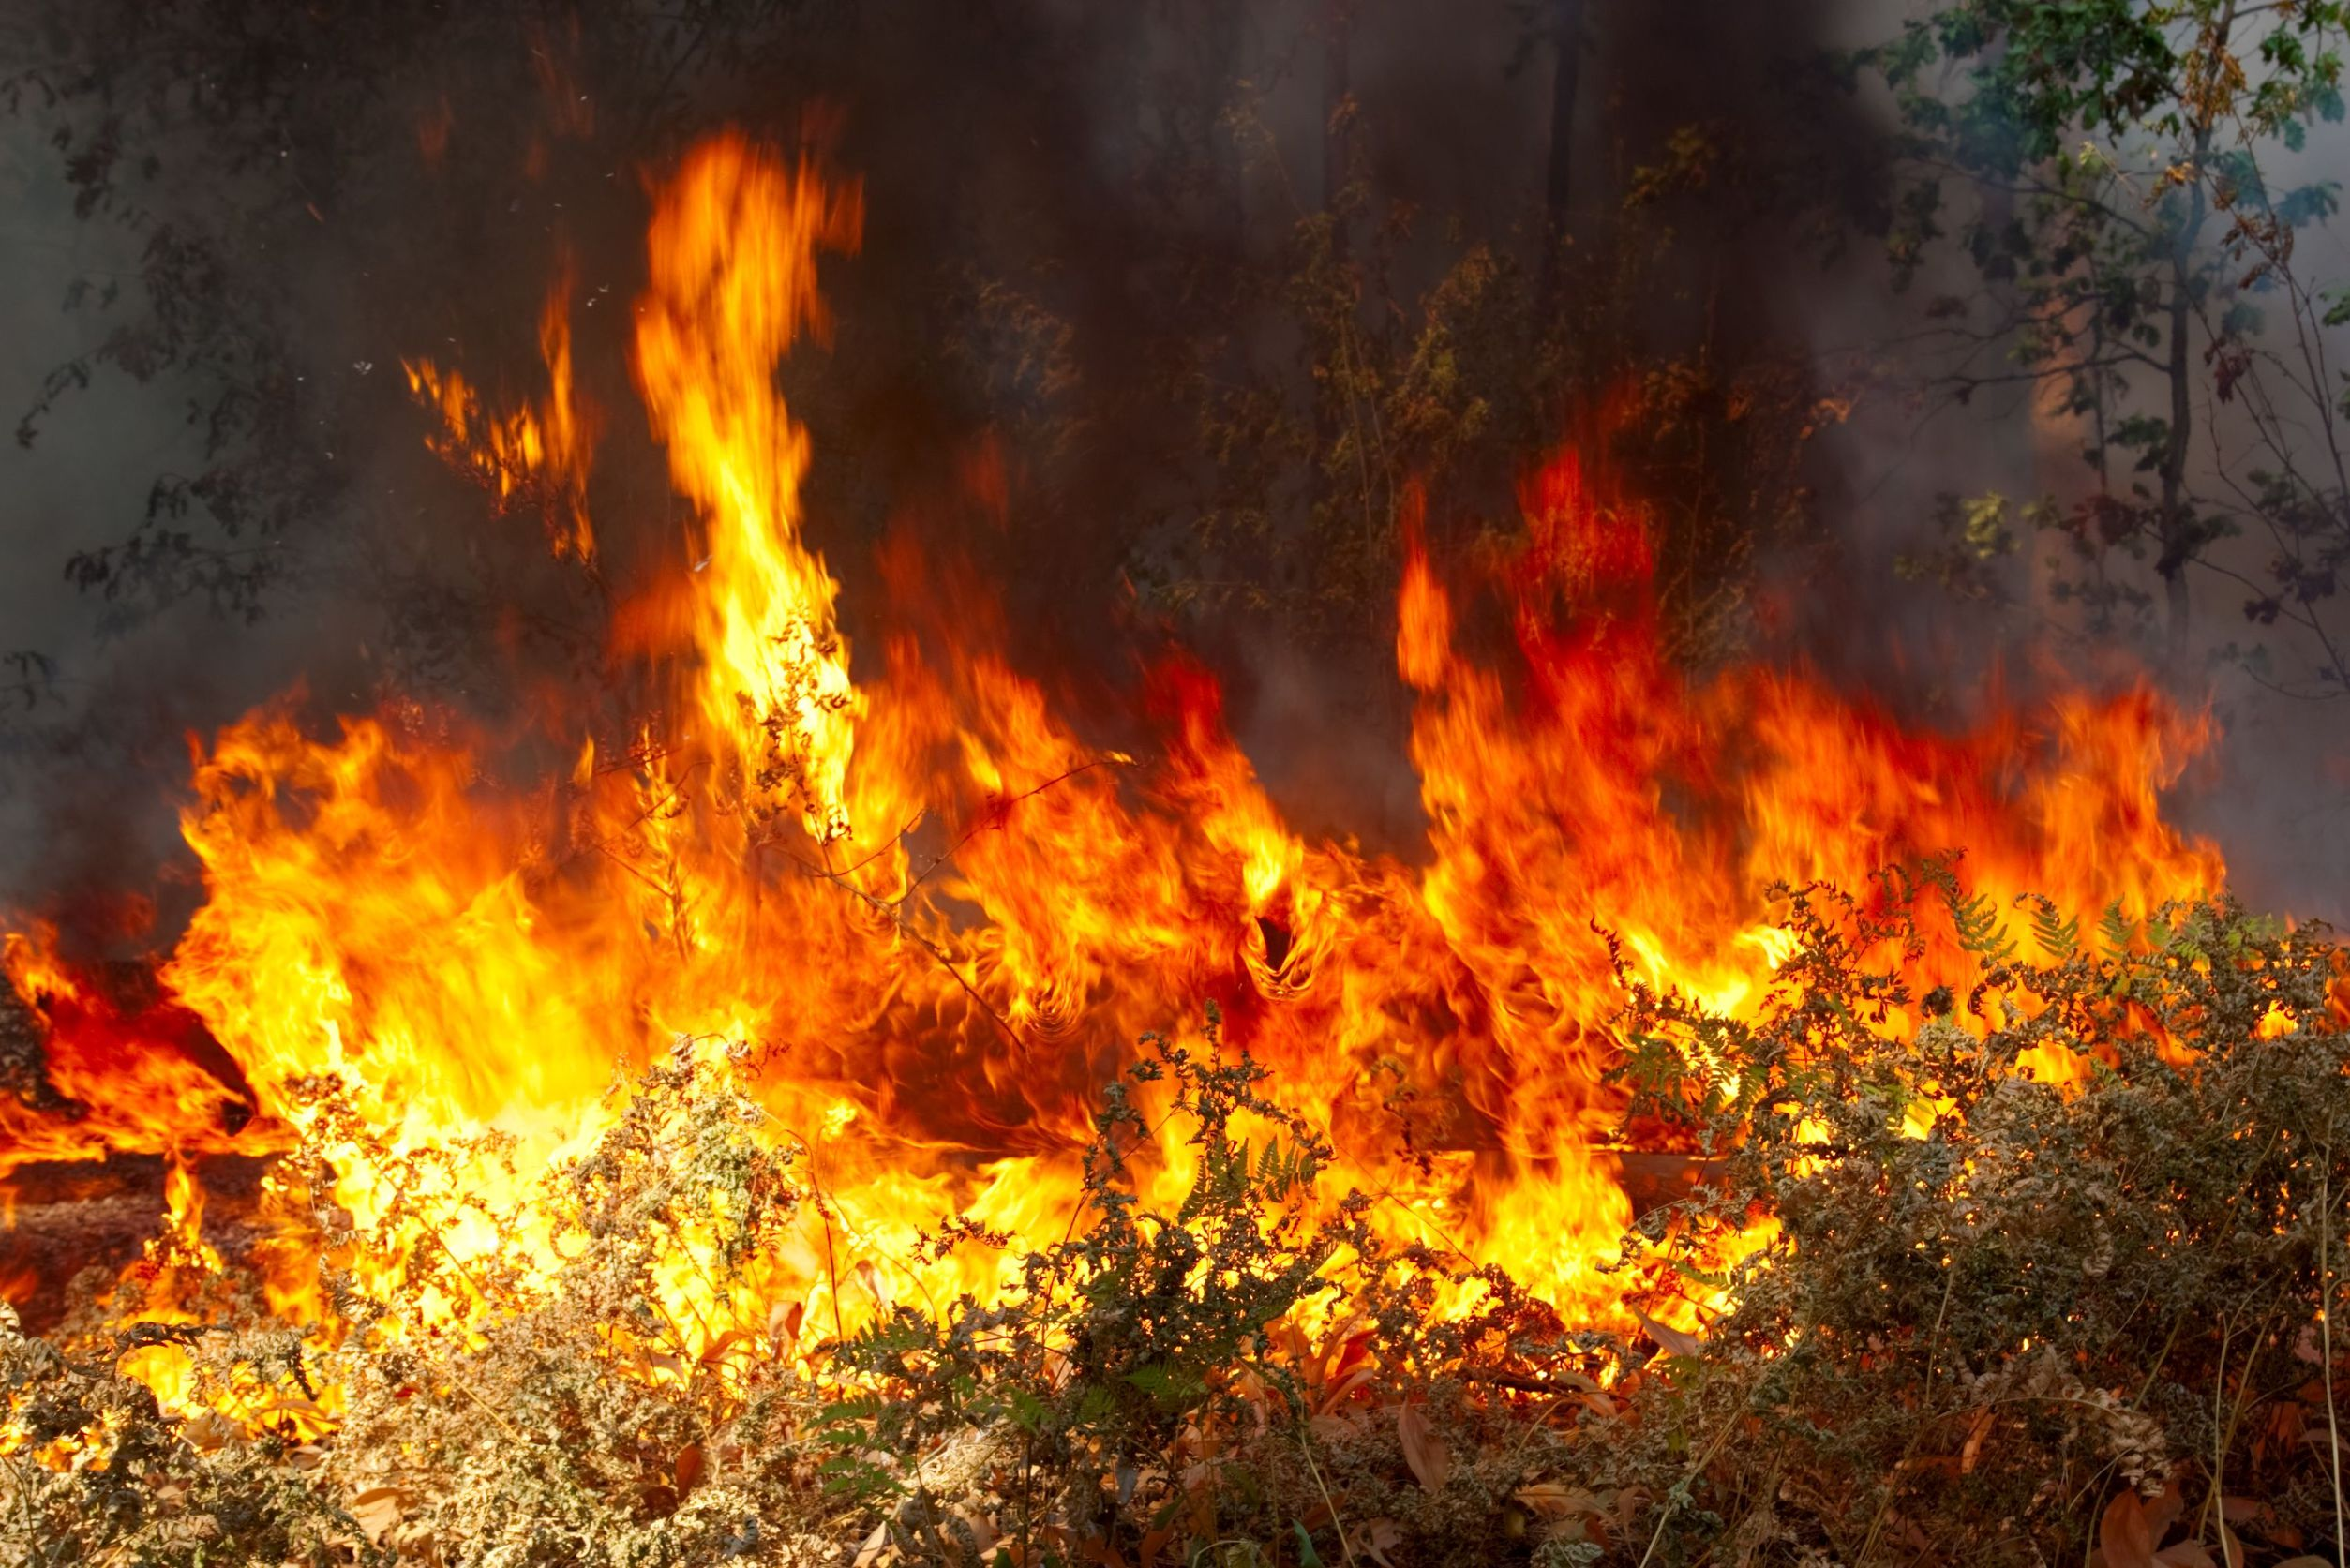 Global Warming Doesn't Exacerbate Wildfires, Obama's Policies Do